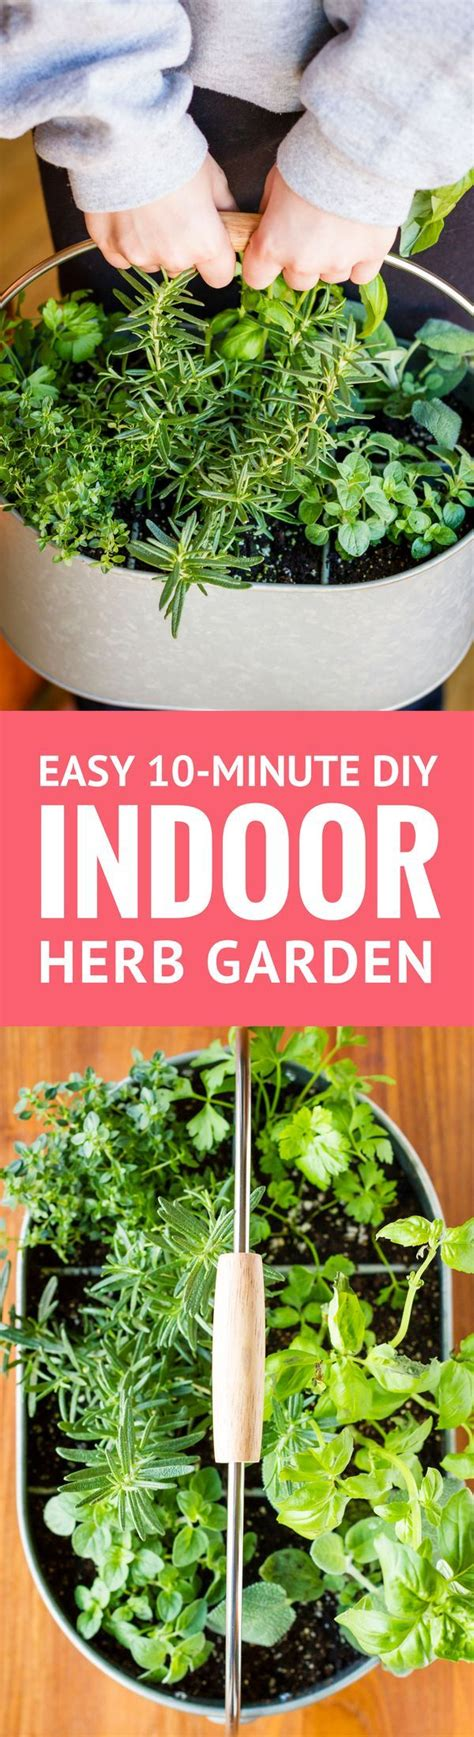 easy herbs to grow inside create a simple diy indoor herb garden in under 10 minutes